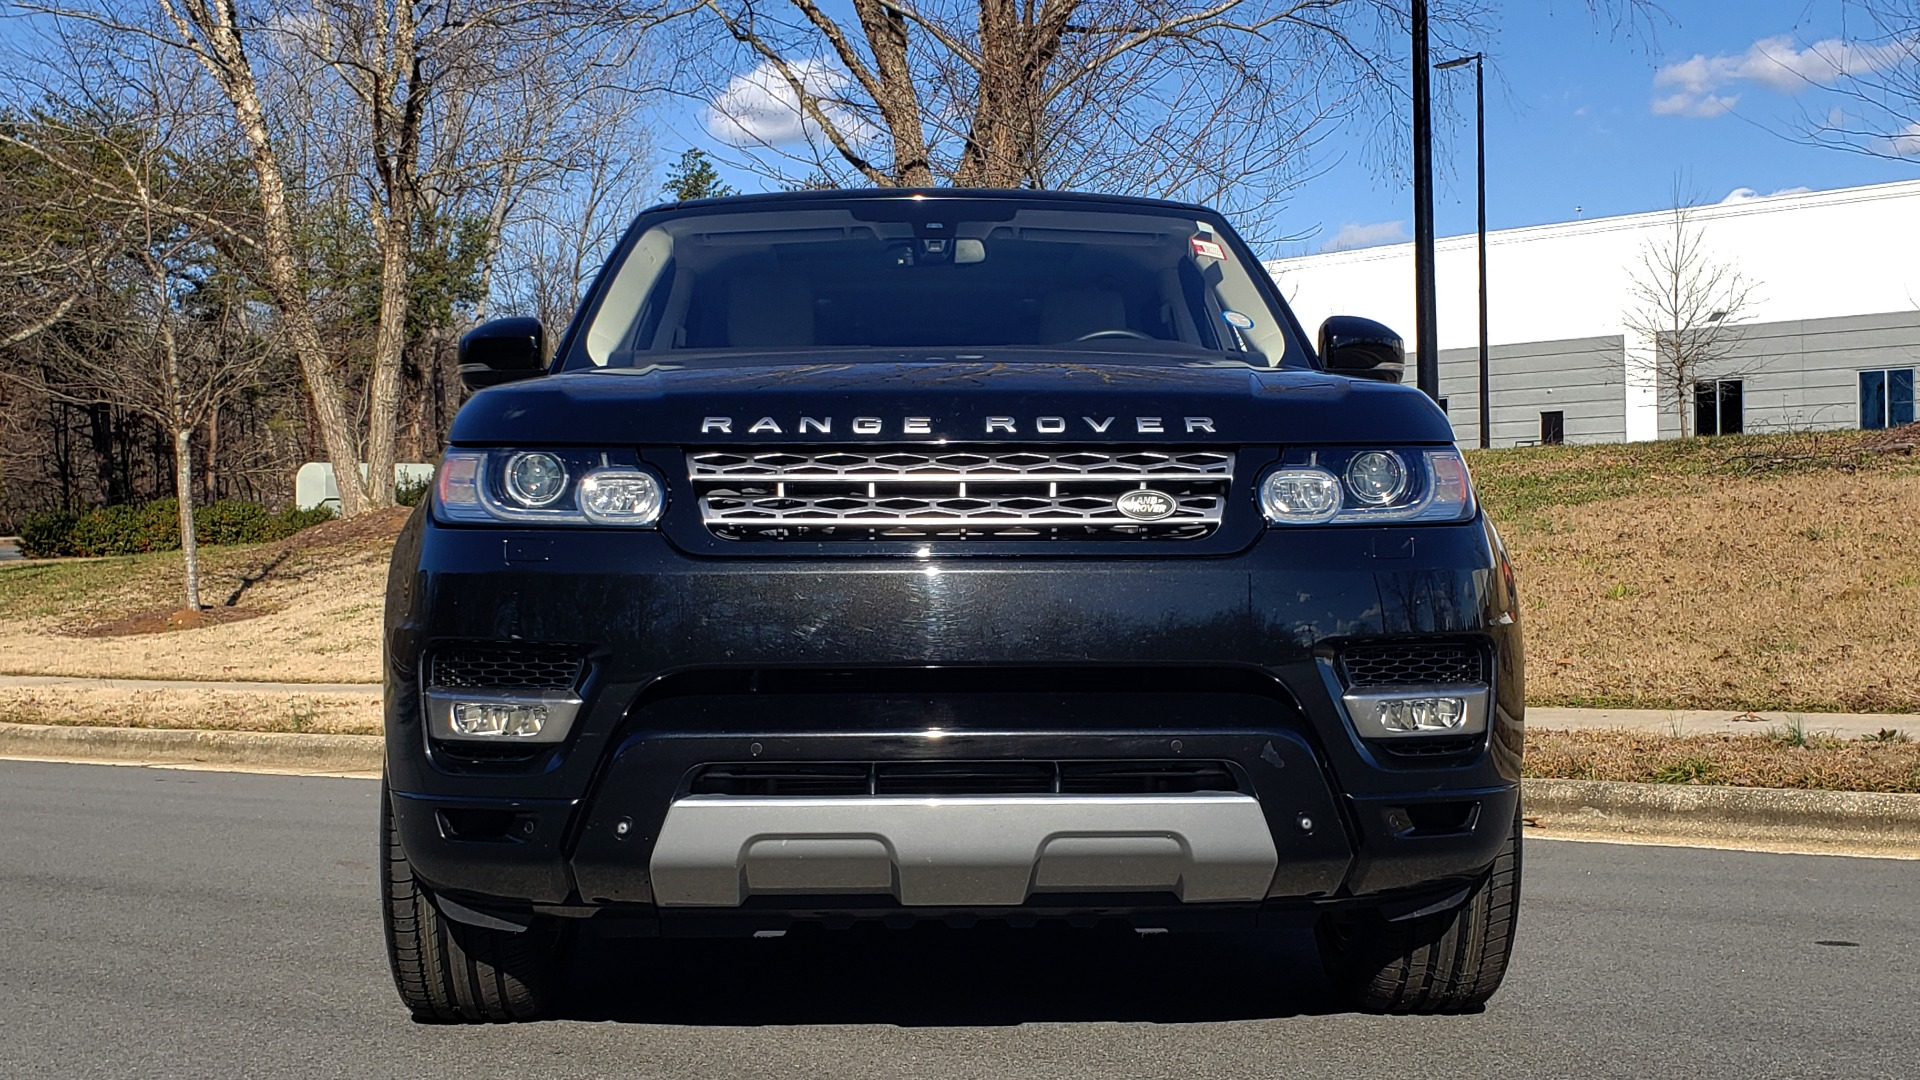 Used 2015 Land Rover RANGE ROVER HSE / 3.0L SC V6 / 8-SPD AUTO / NAV / PANO ROOF / REARVIEW for sale Sold at Formula Imports in Charlotte NC 28227 24